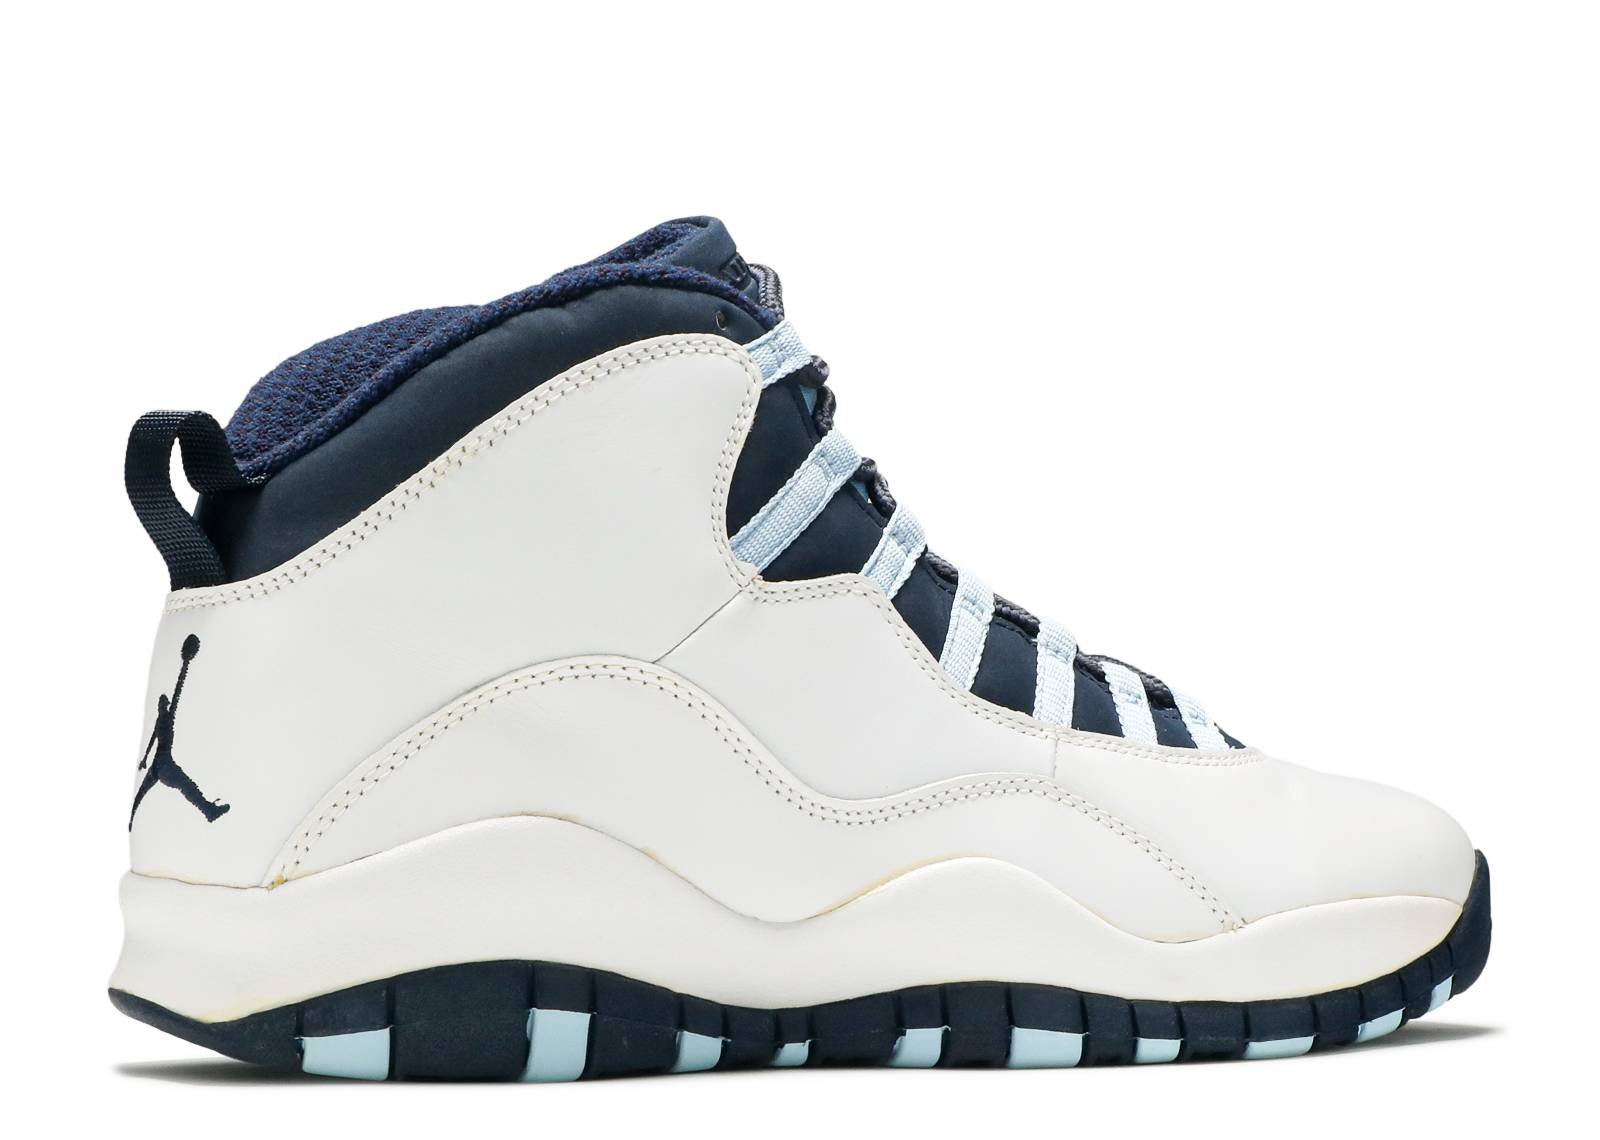 huge selection of f433a 25137 Find Nike Air Jordan 10 White Obsidian Ice Blue Varsity Red ...